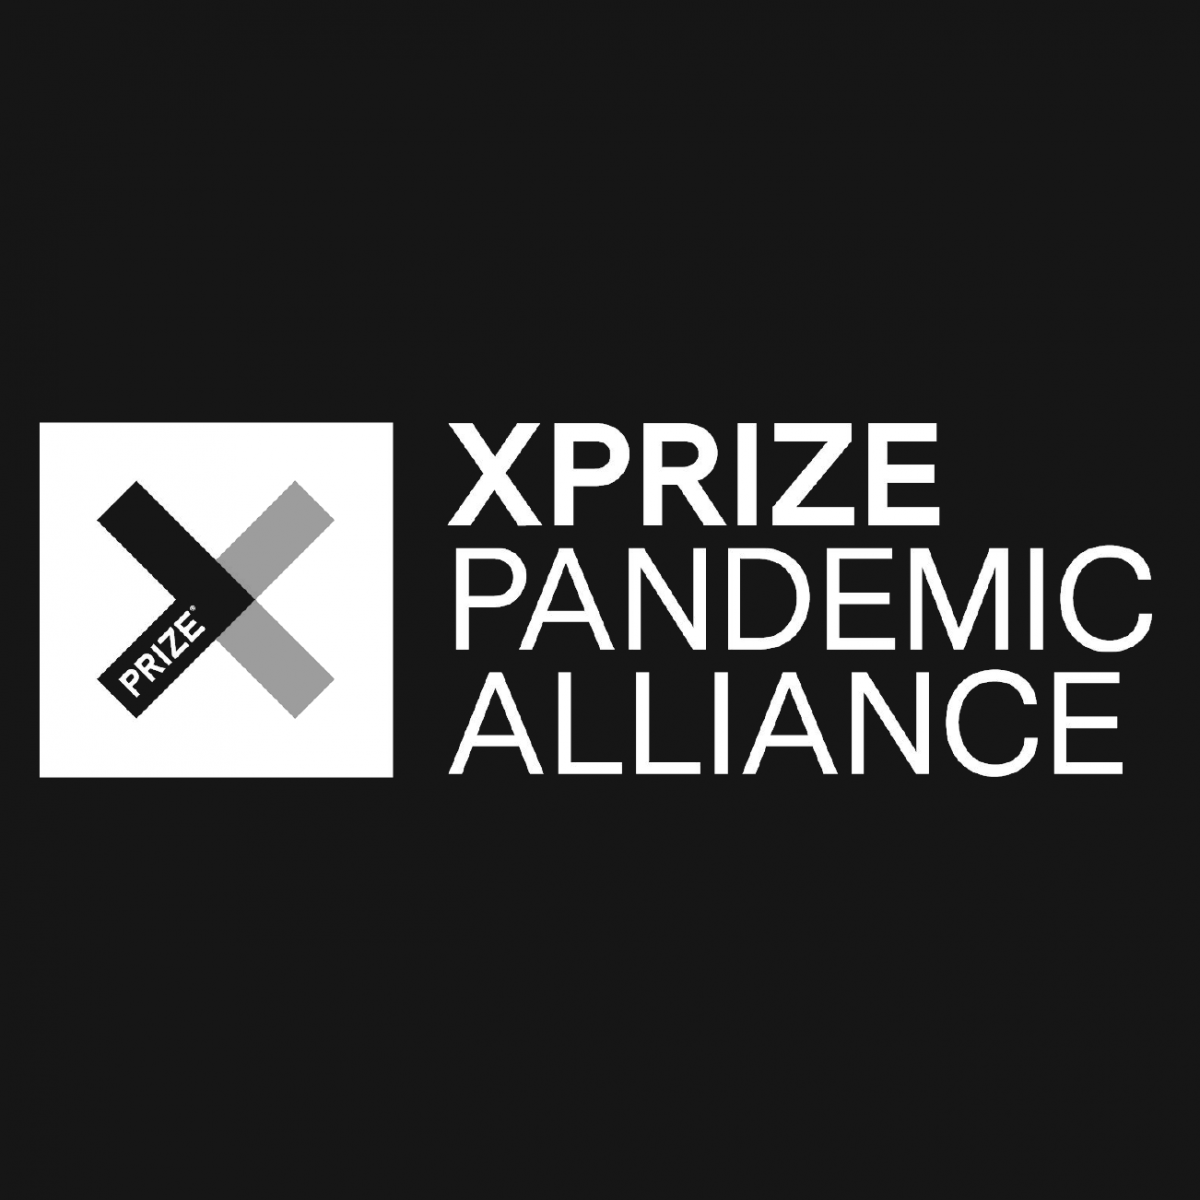 XPrize Pandemic Alliance logo